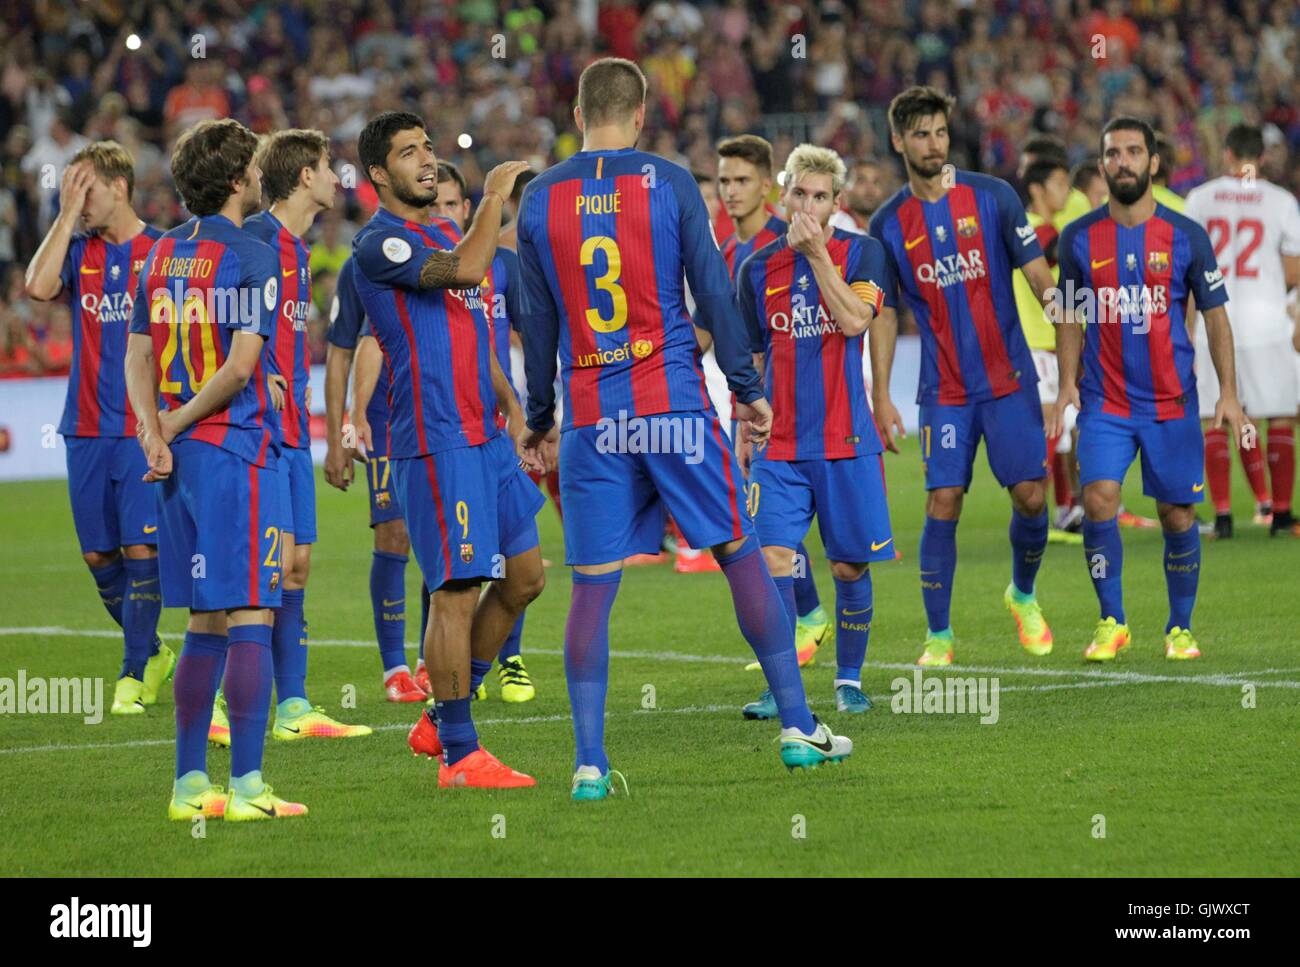 Barcelona, Spain. August 17, 2016. Barcelona won the Super Cup of Spain during the match LFC Barcelona - Sevilla - Stock Image